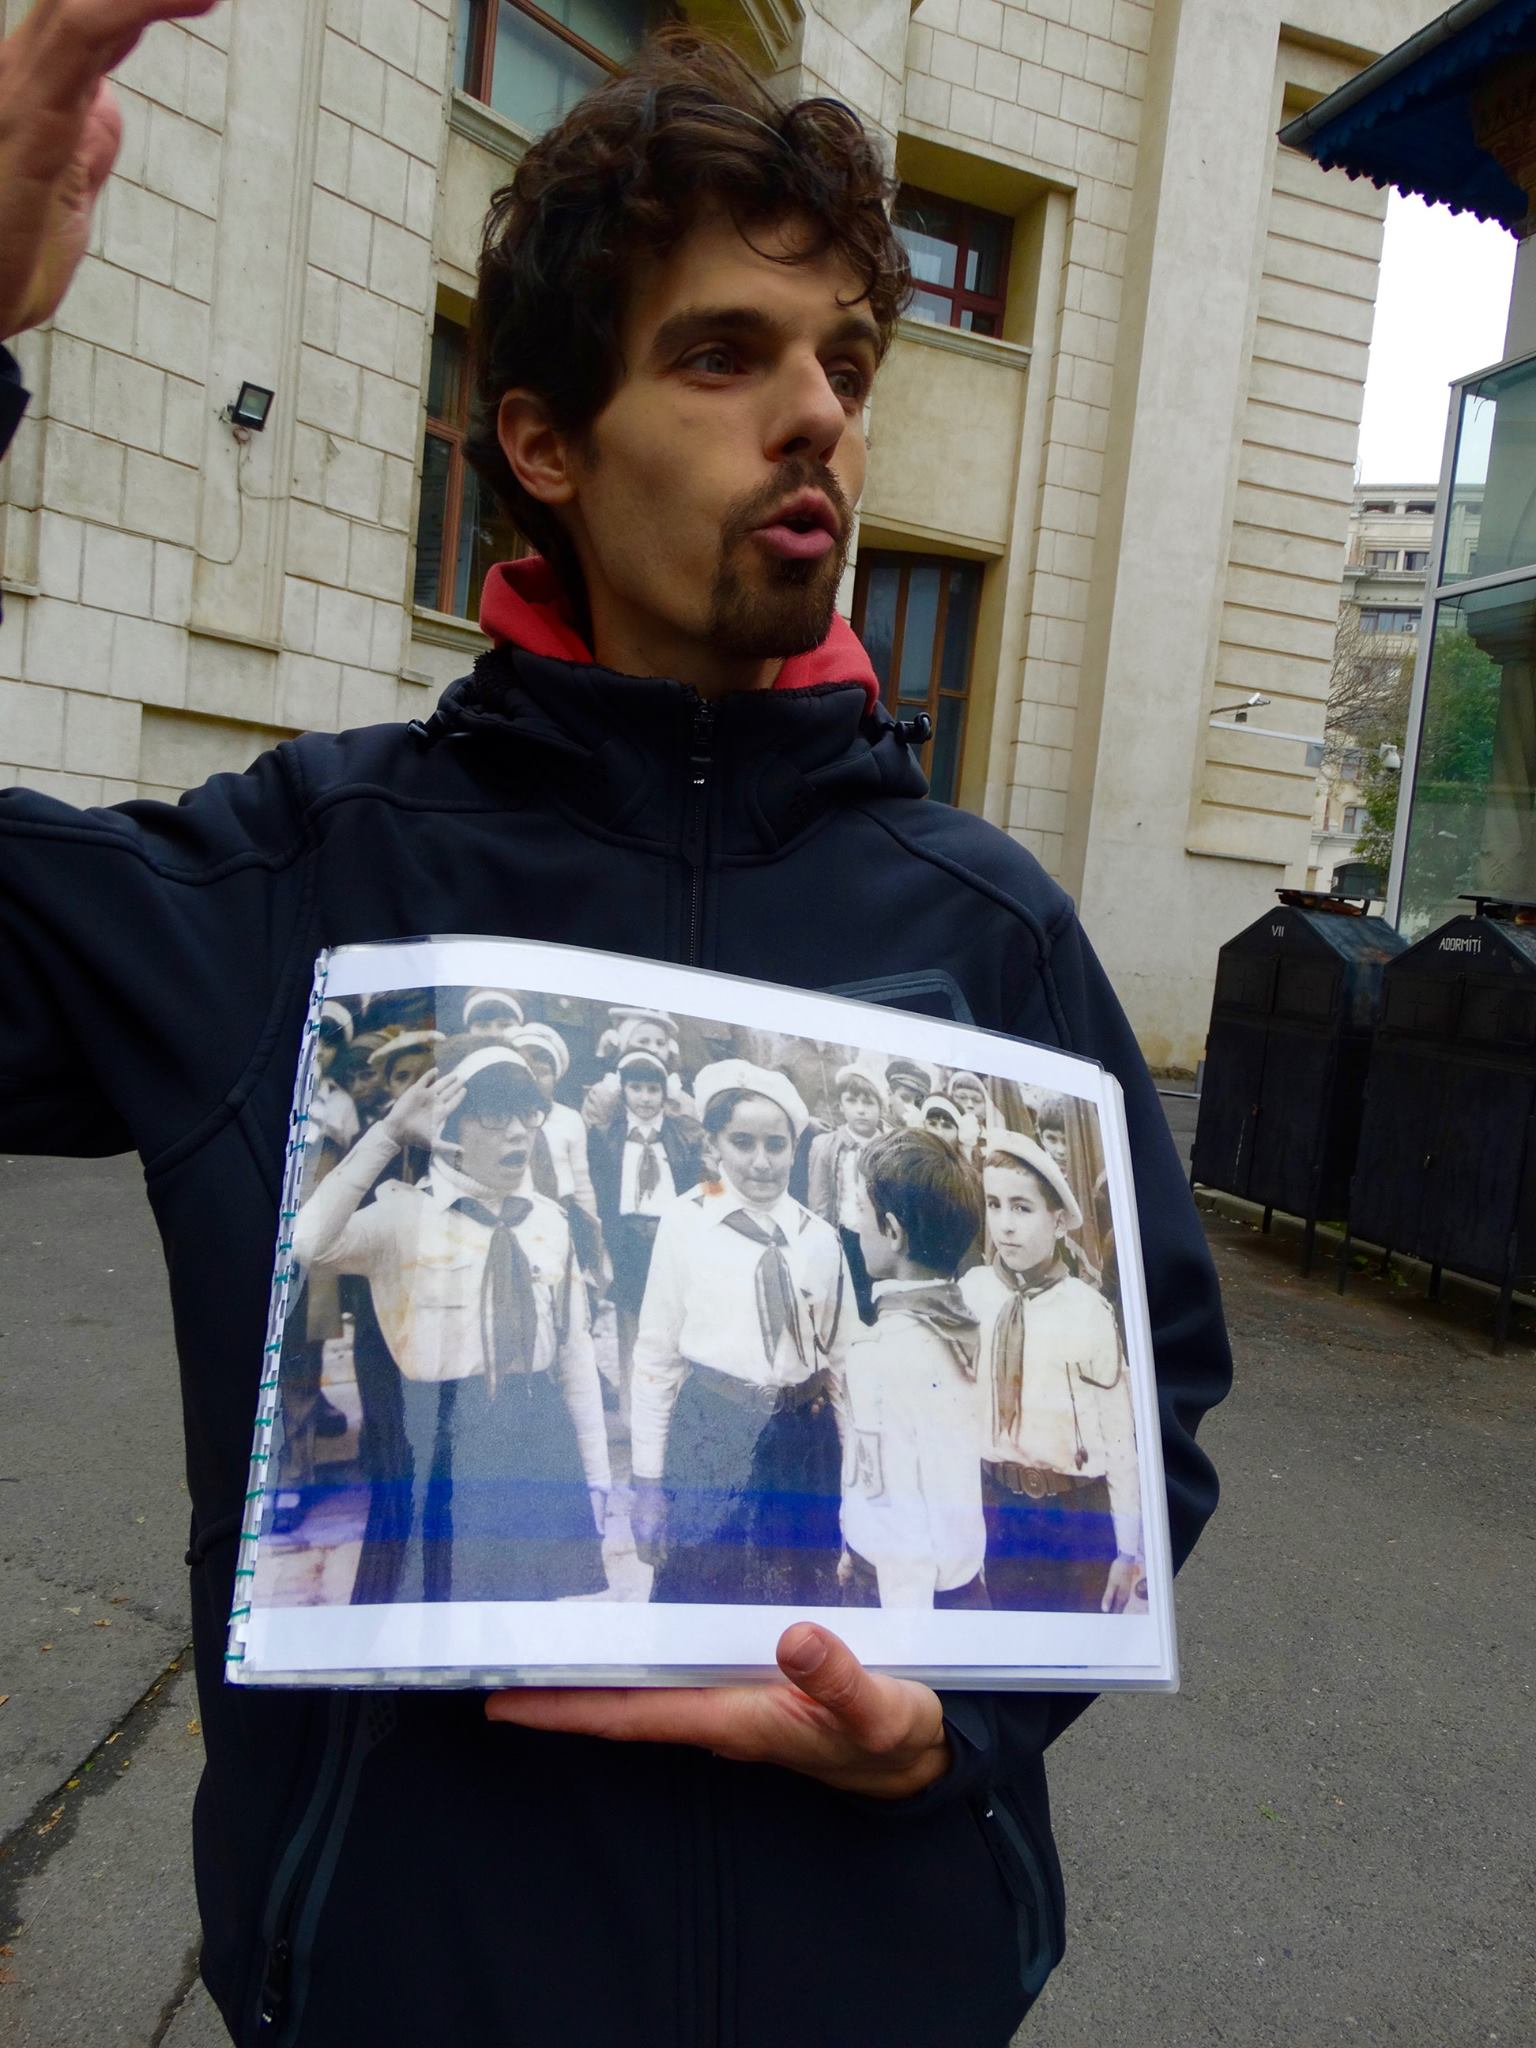 """A picture of Romania's communist youth program, the """"Pioneers"""". The state mandated that all children from the second grade to the eighth become Pioneers, and our tour guide himself was a Pioneer during the last year of Ceauşescu's regime."""